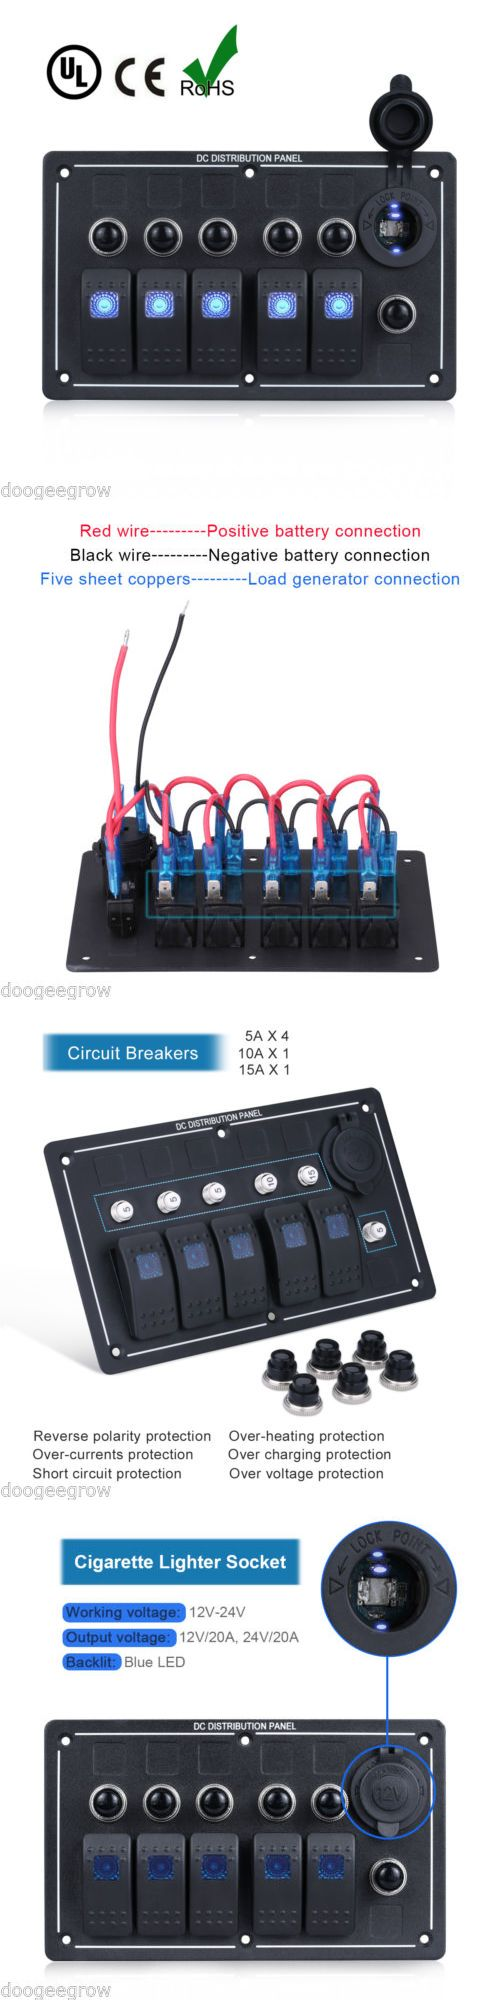 boat parts: New 5 Gang Led Rocker Switch Panel 6 Circuit Breakers Waterproof Marine Car Boat BUY IT NOW ONLY: $41.9